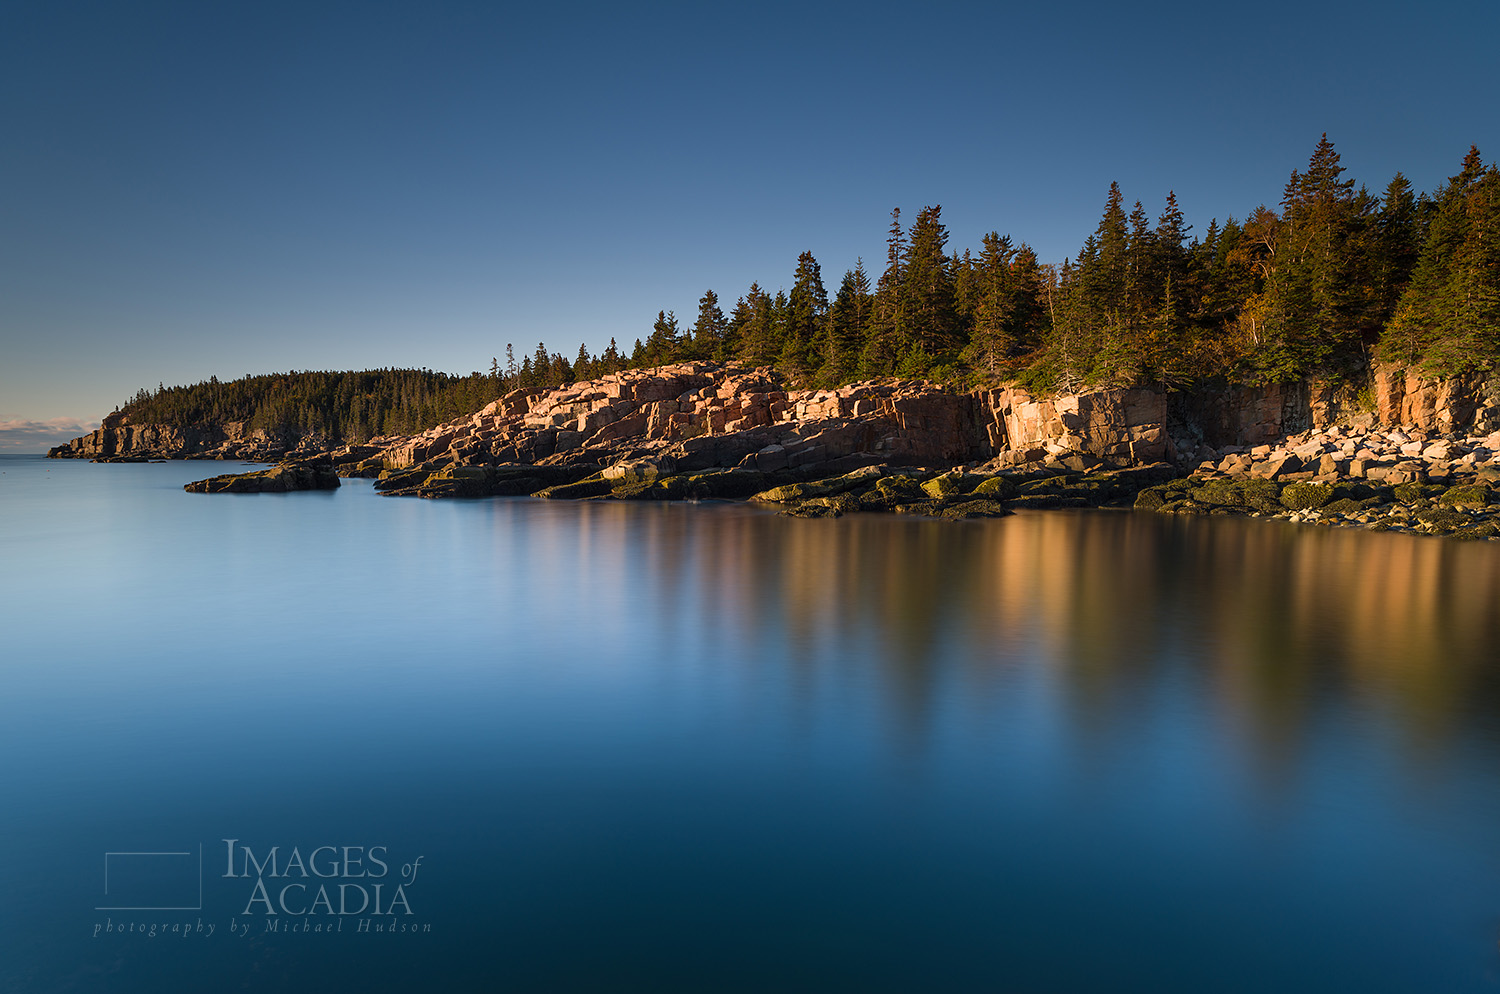 Sunrise along the east coast of Acadia National Park, Maine, USA